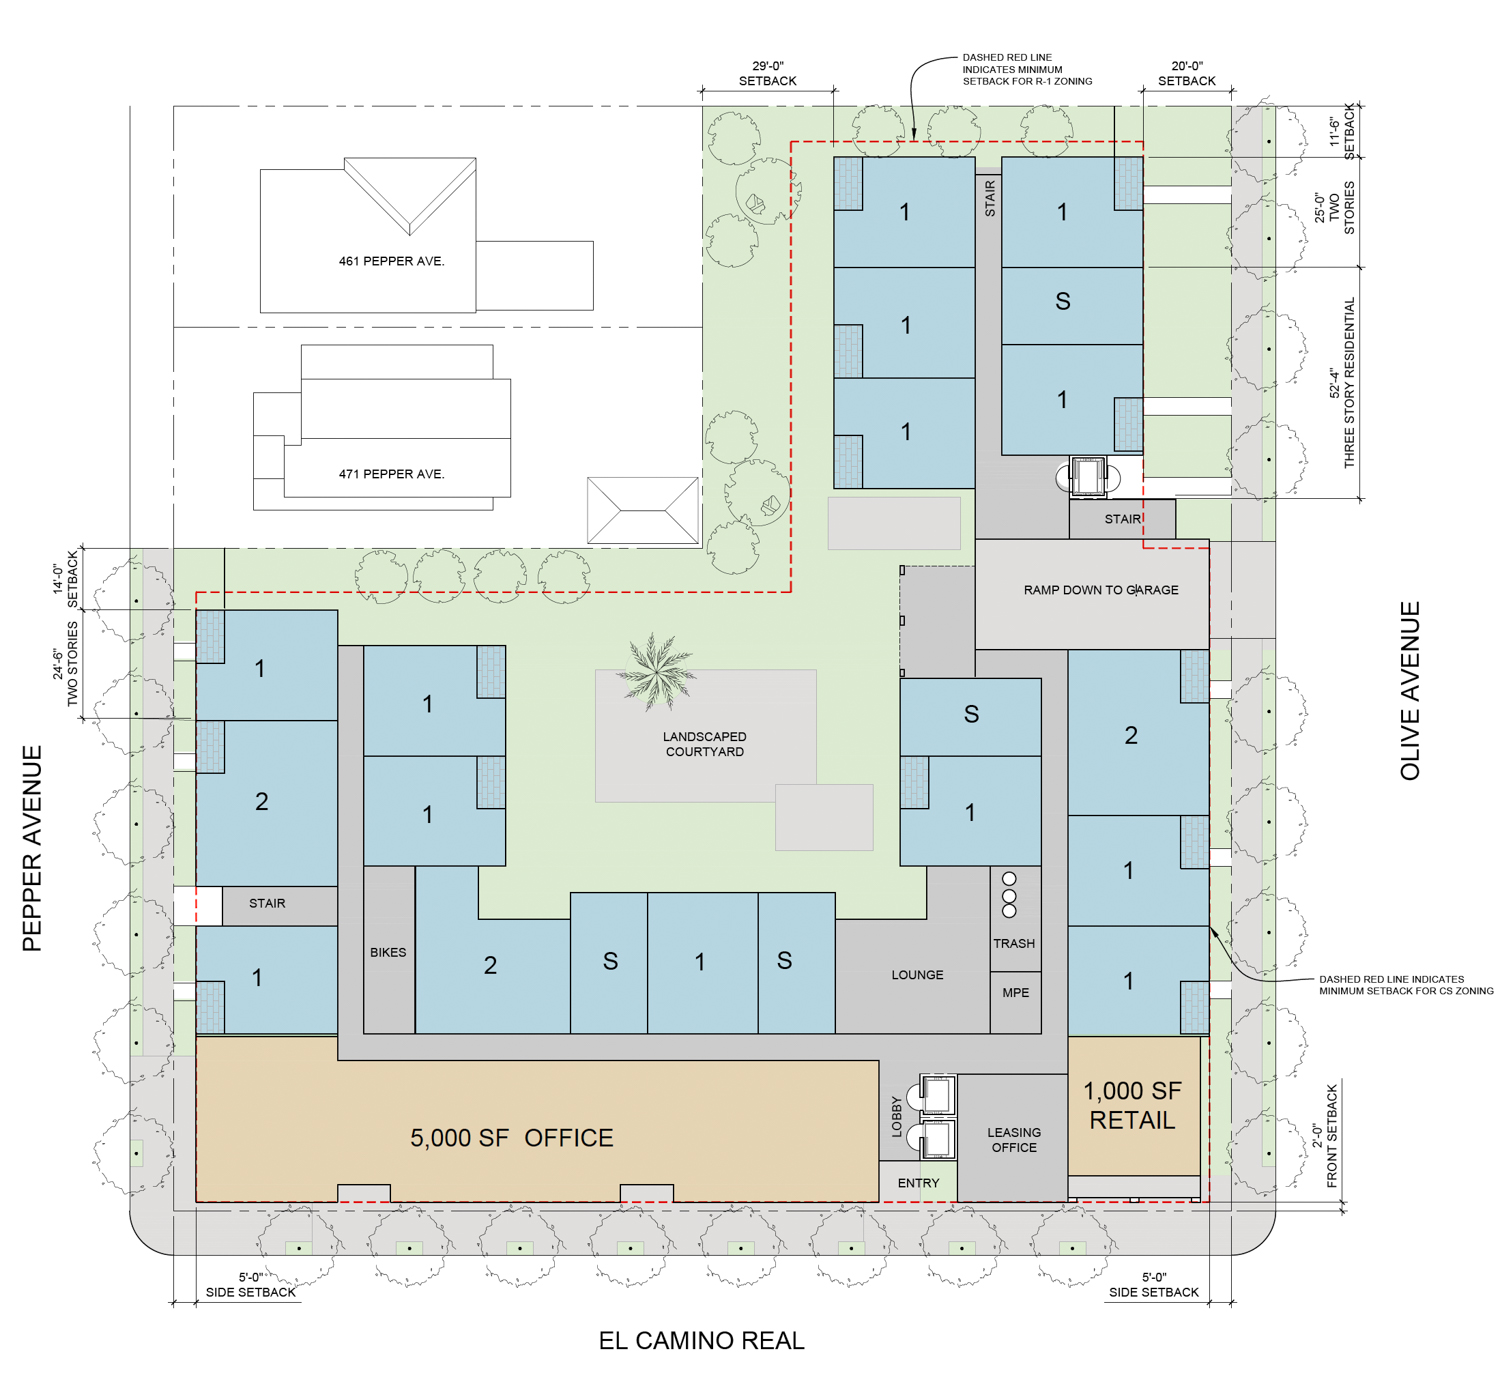 2951 El Camino Real floor plan, drawing by Sherry L Scott Architect